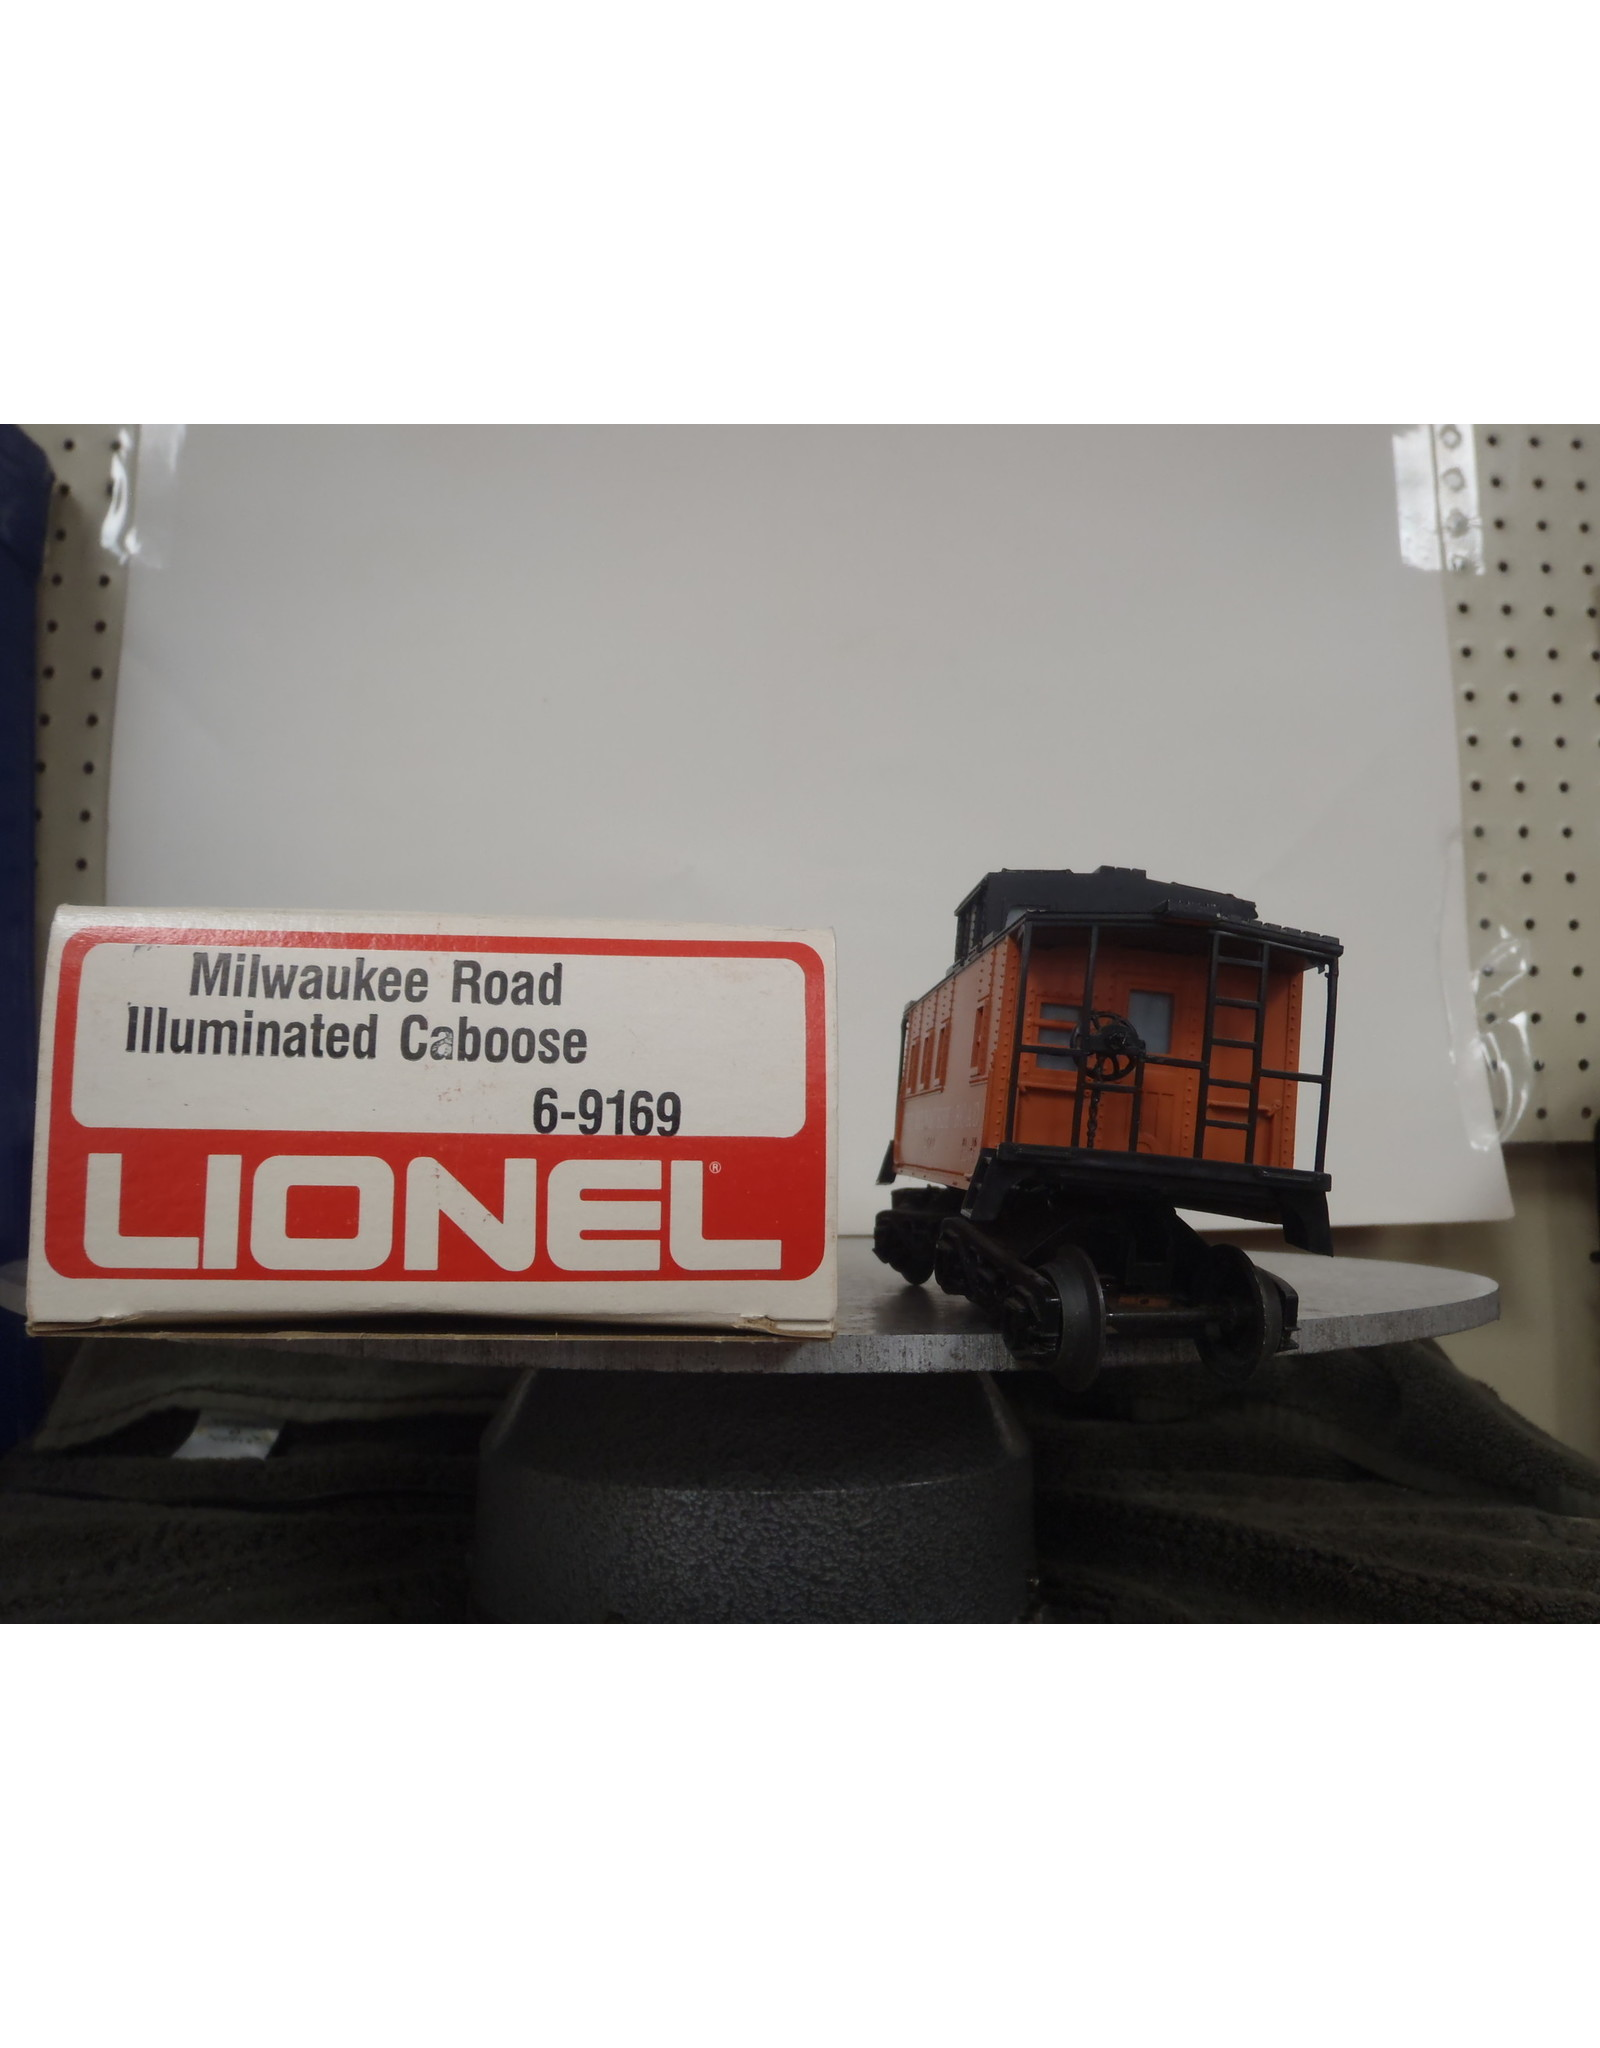 Lionel Caboose Milwaukee Rd Lighted 9169